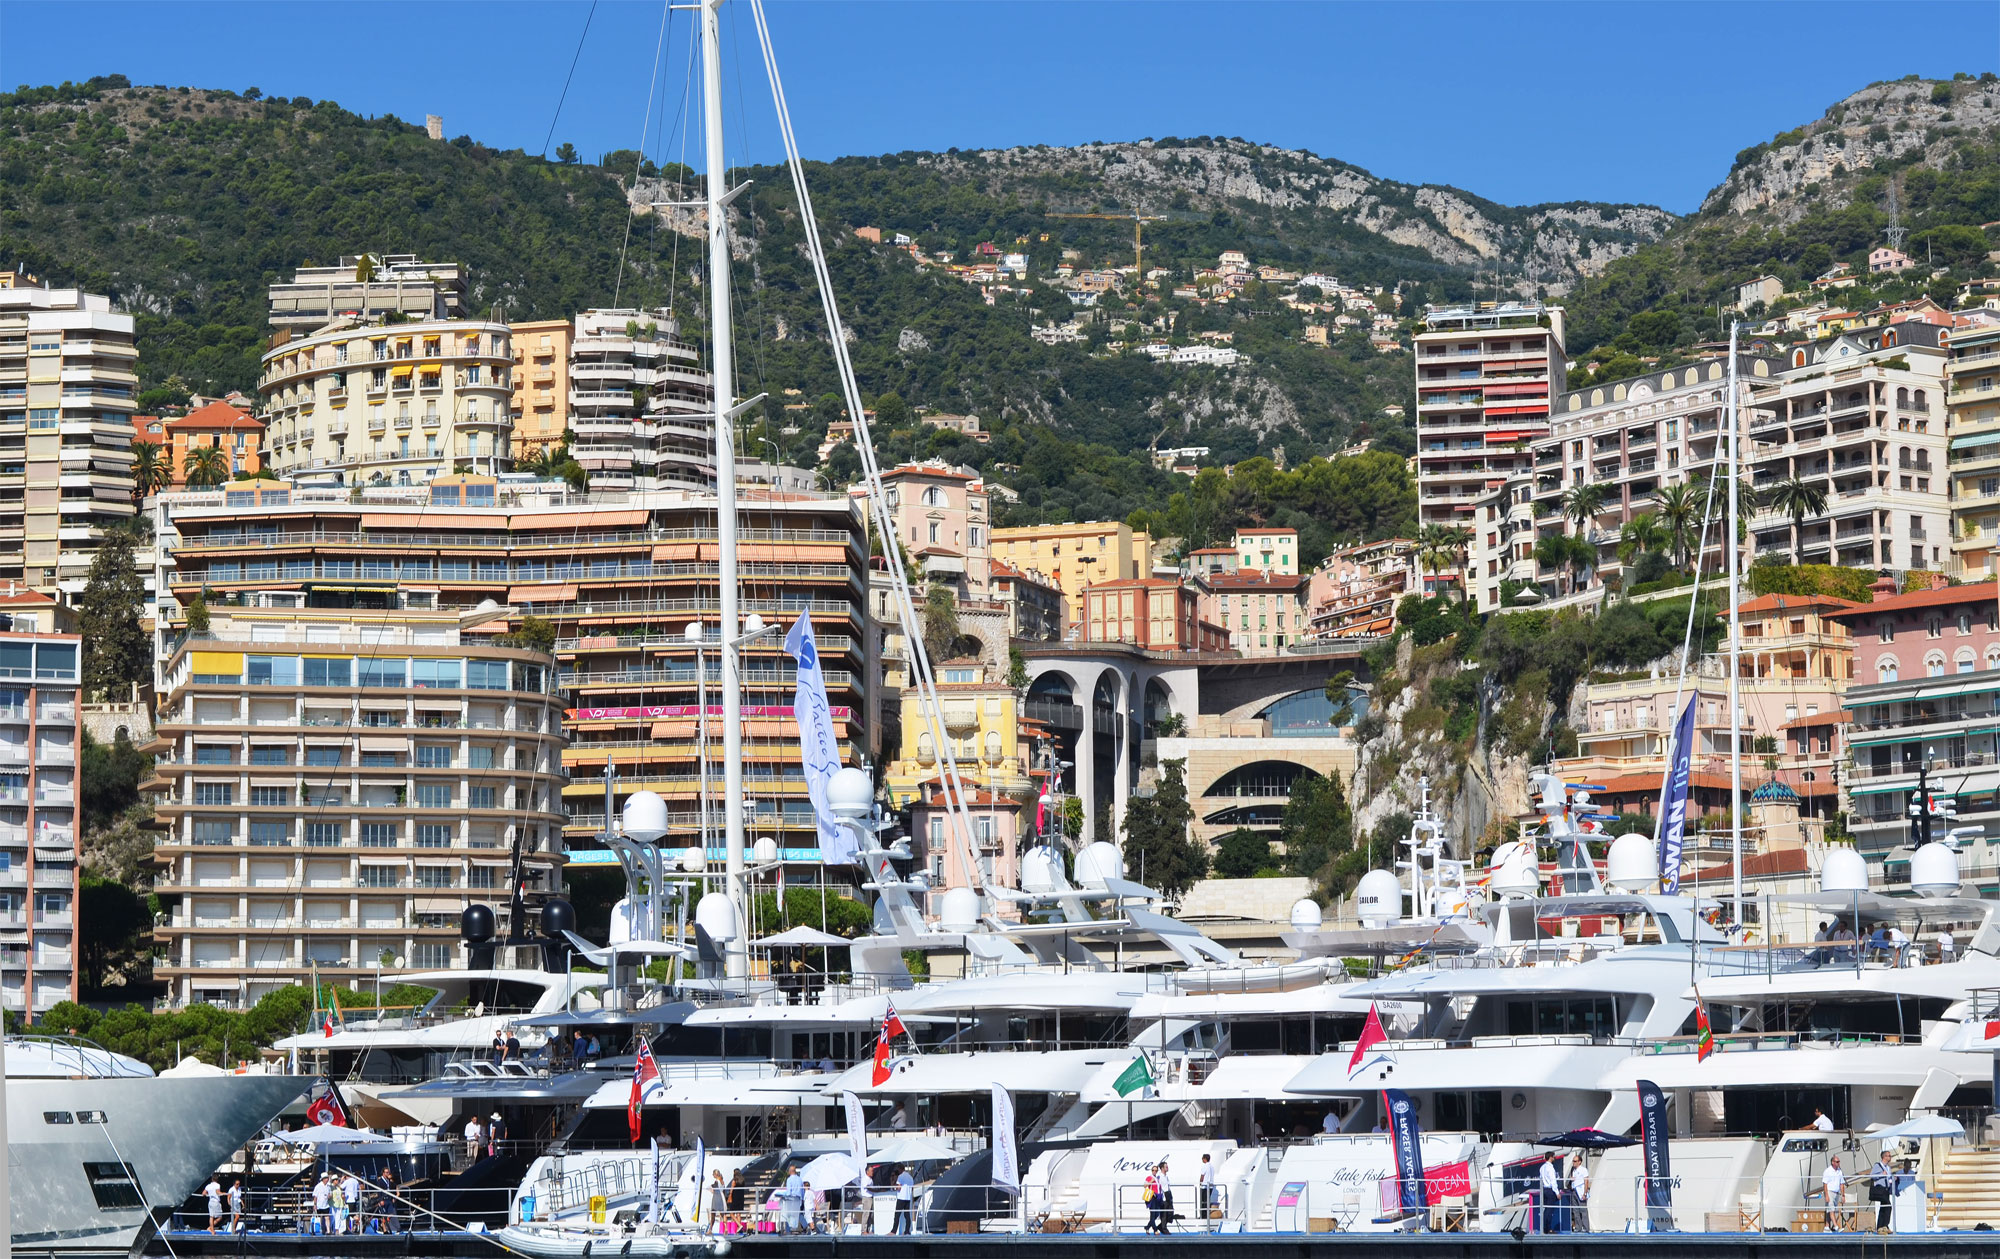 Some of the incredible yachts on display at the 2015 Monaco Yacht Show